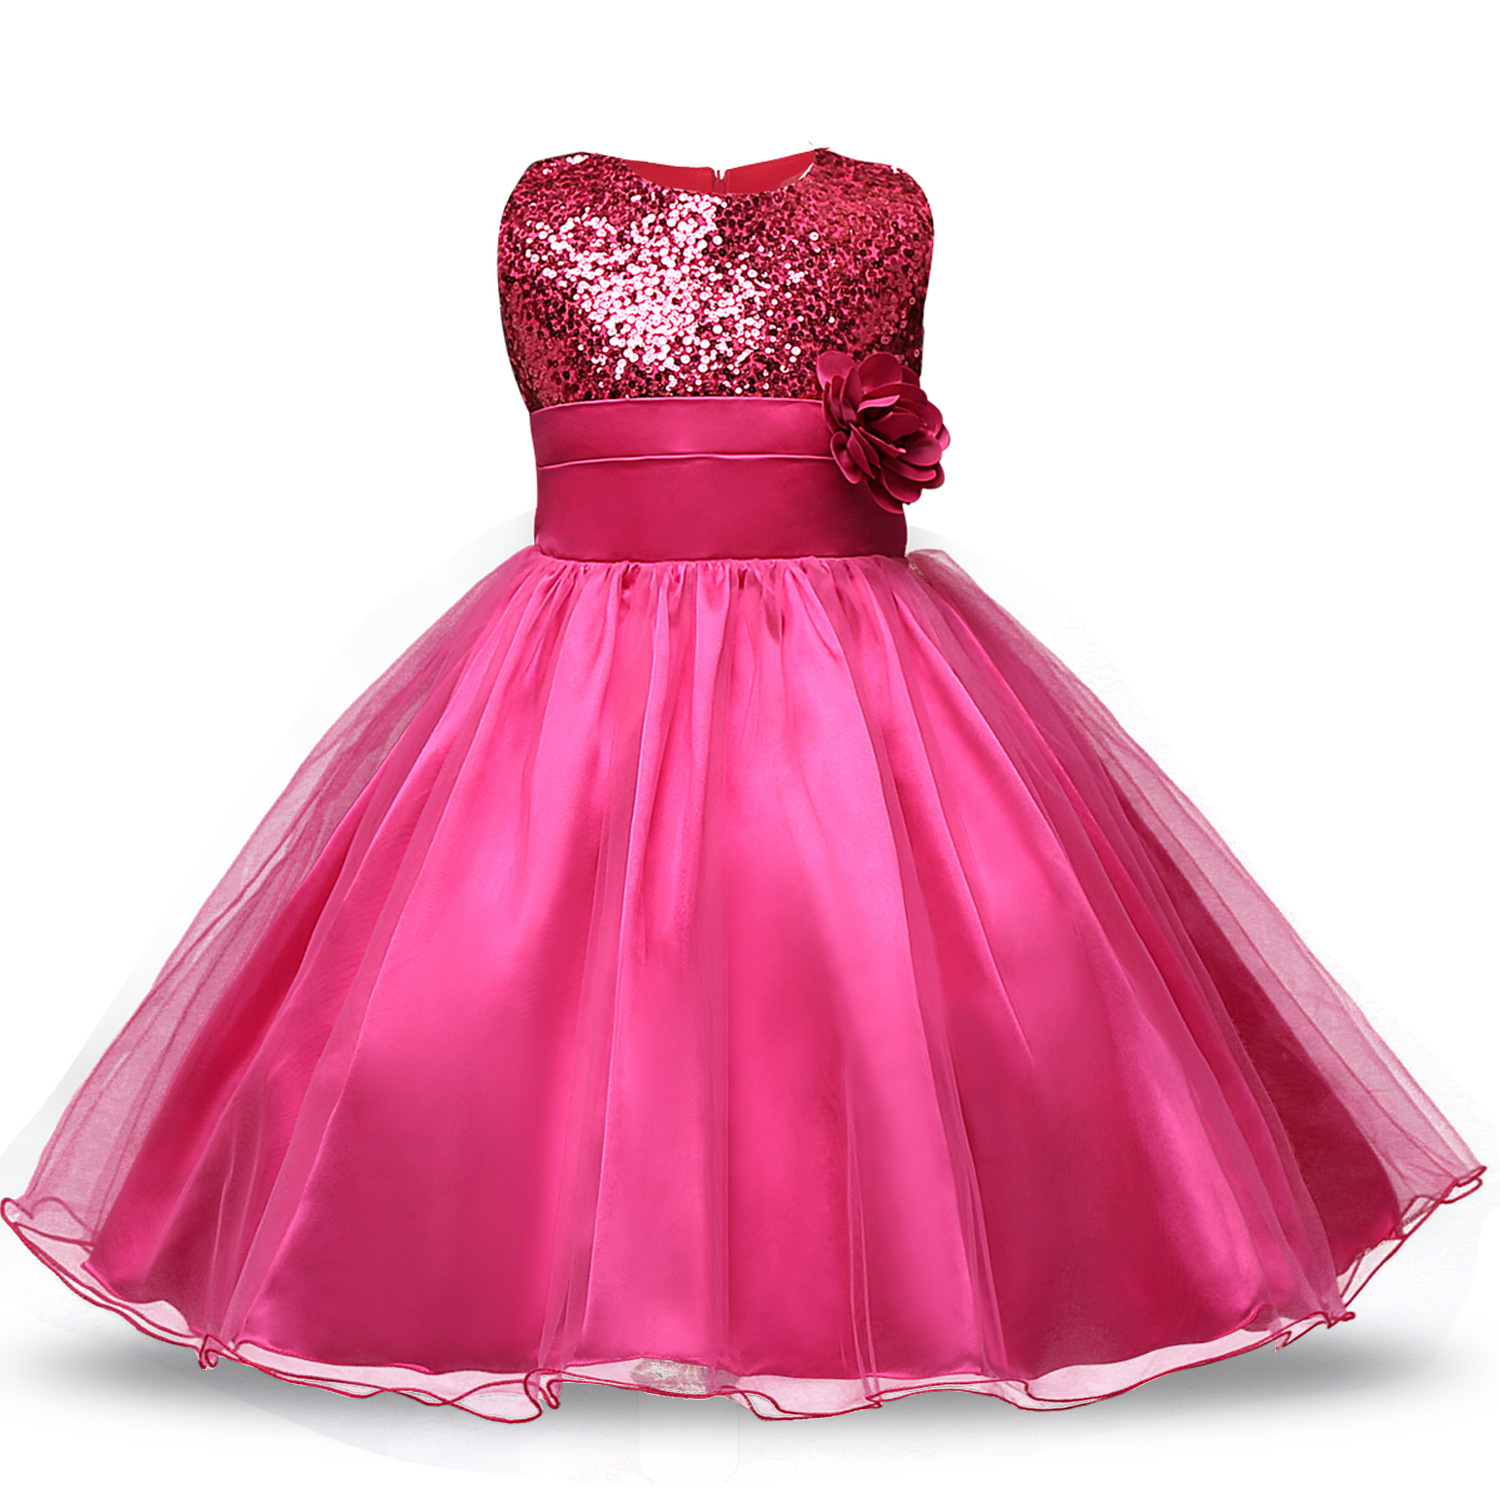 Cross Border Foreign Trade Korean-style GIRL'S Gown Princess Dress Europe And America Sequin Flower Formal Dress Short Cotton In